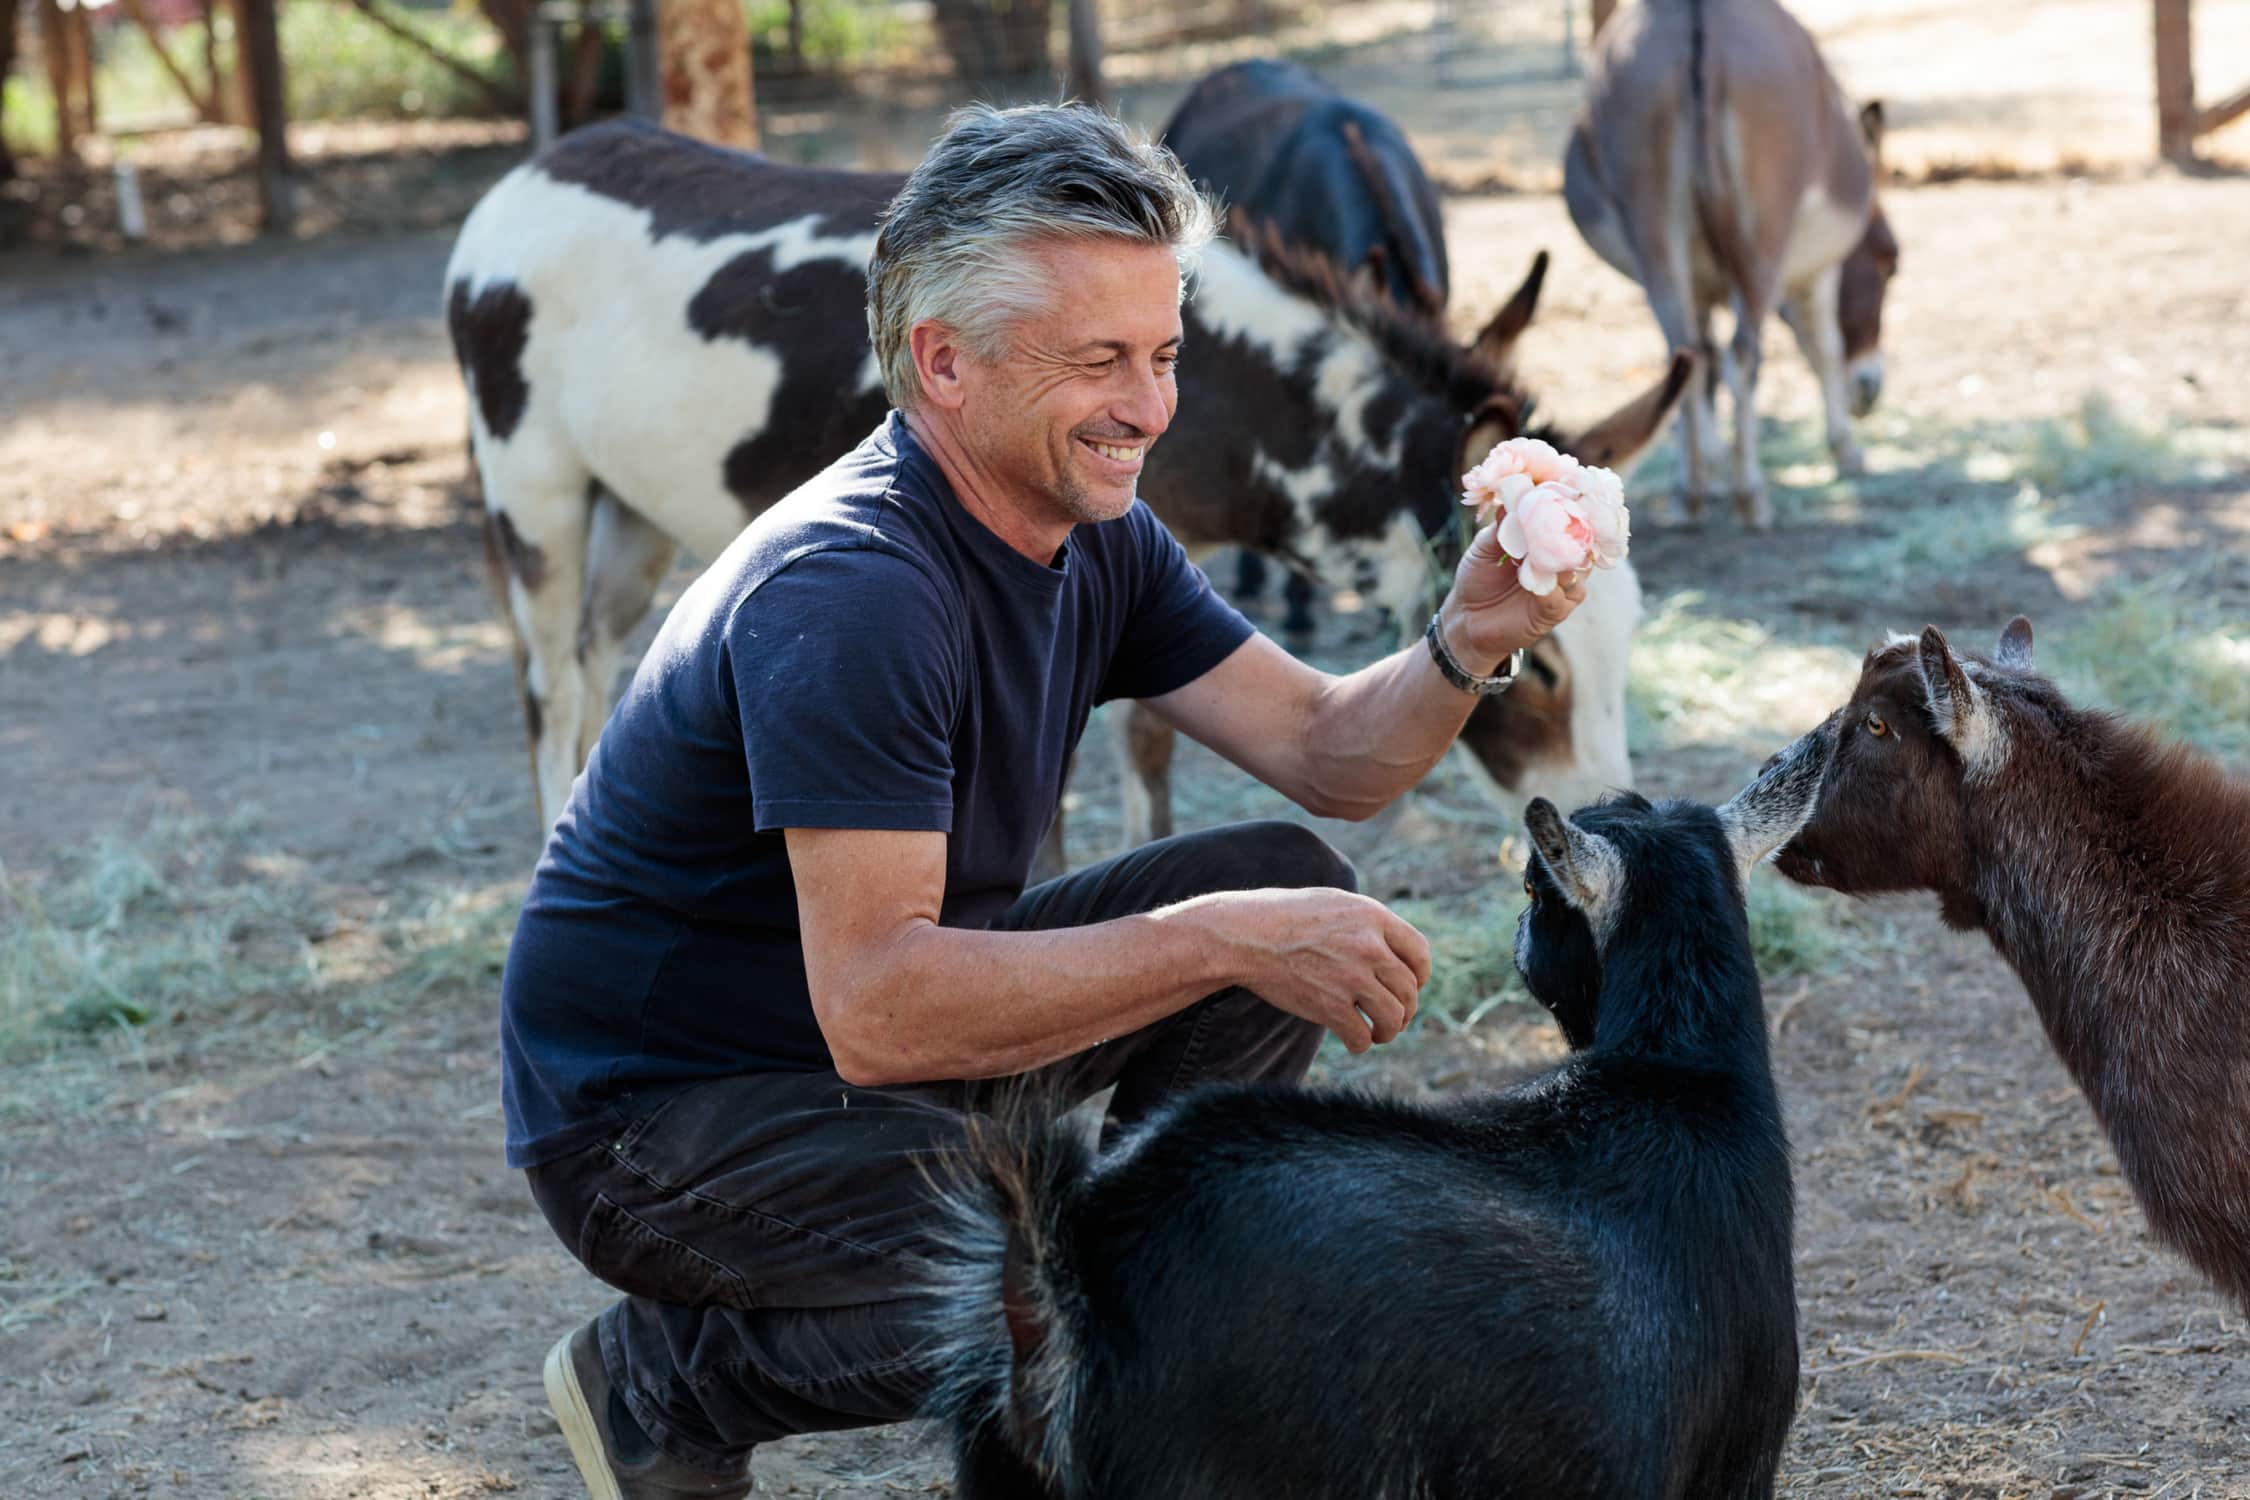 steve giannetti with goats